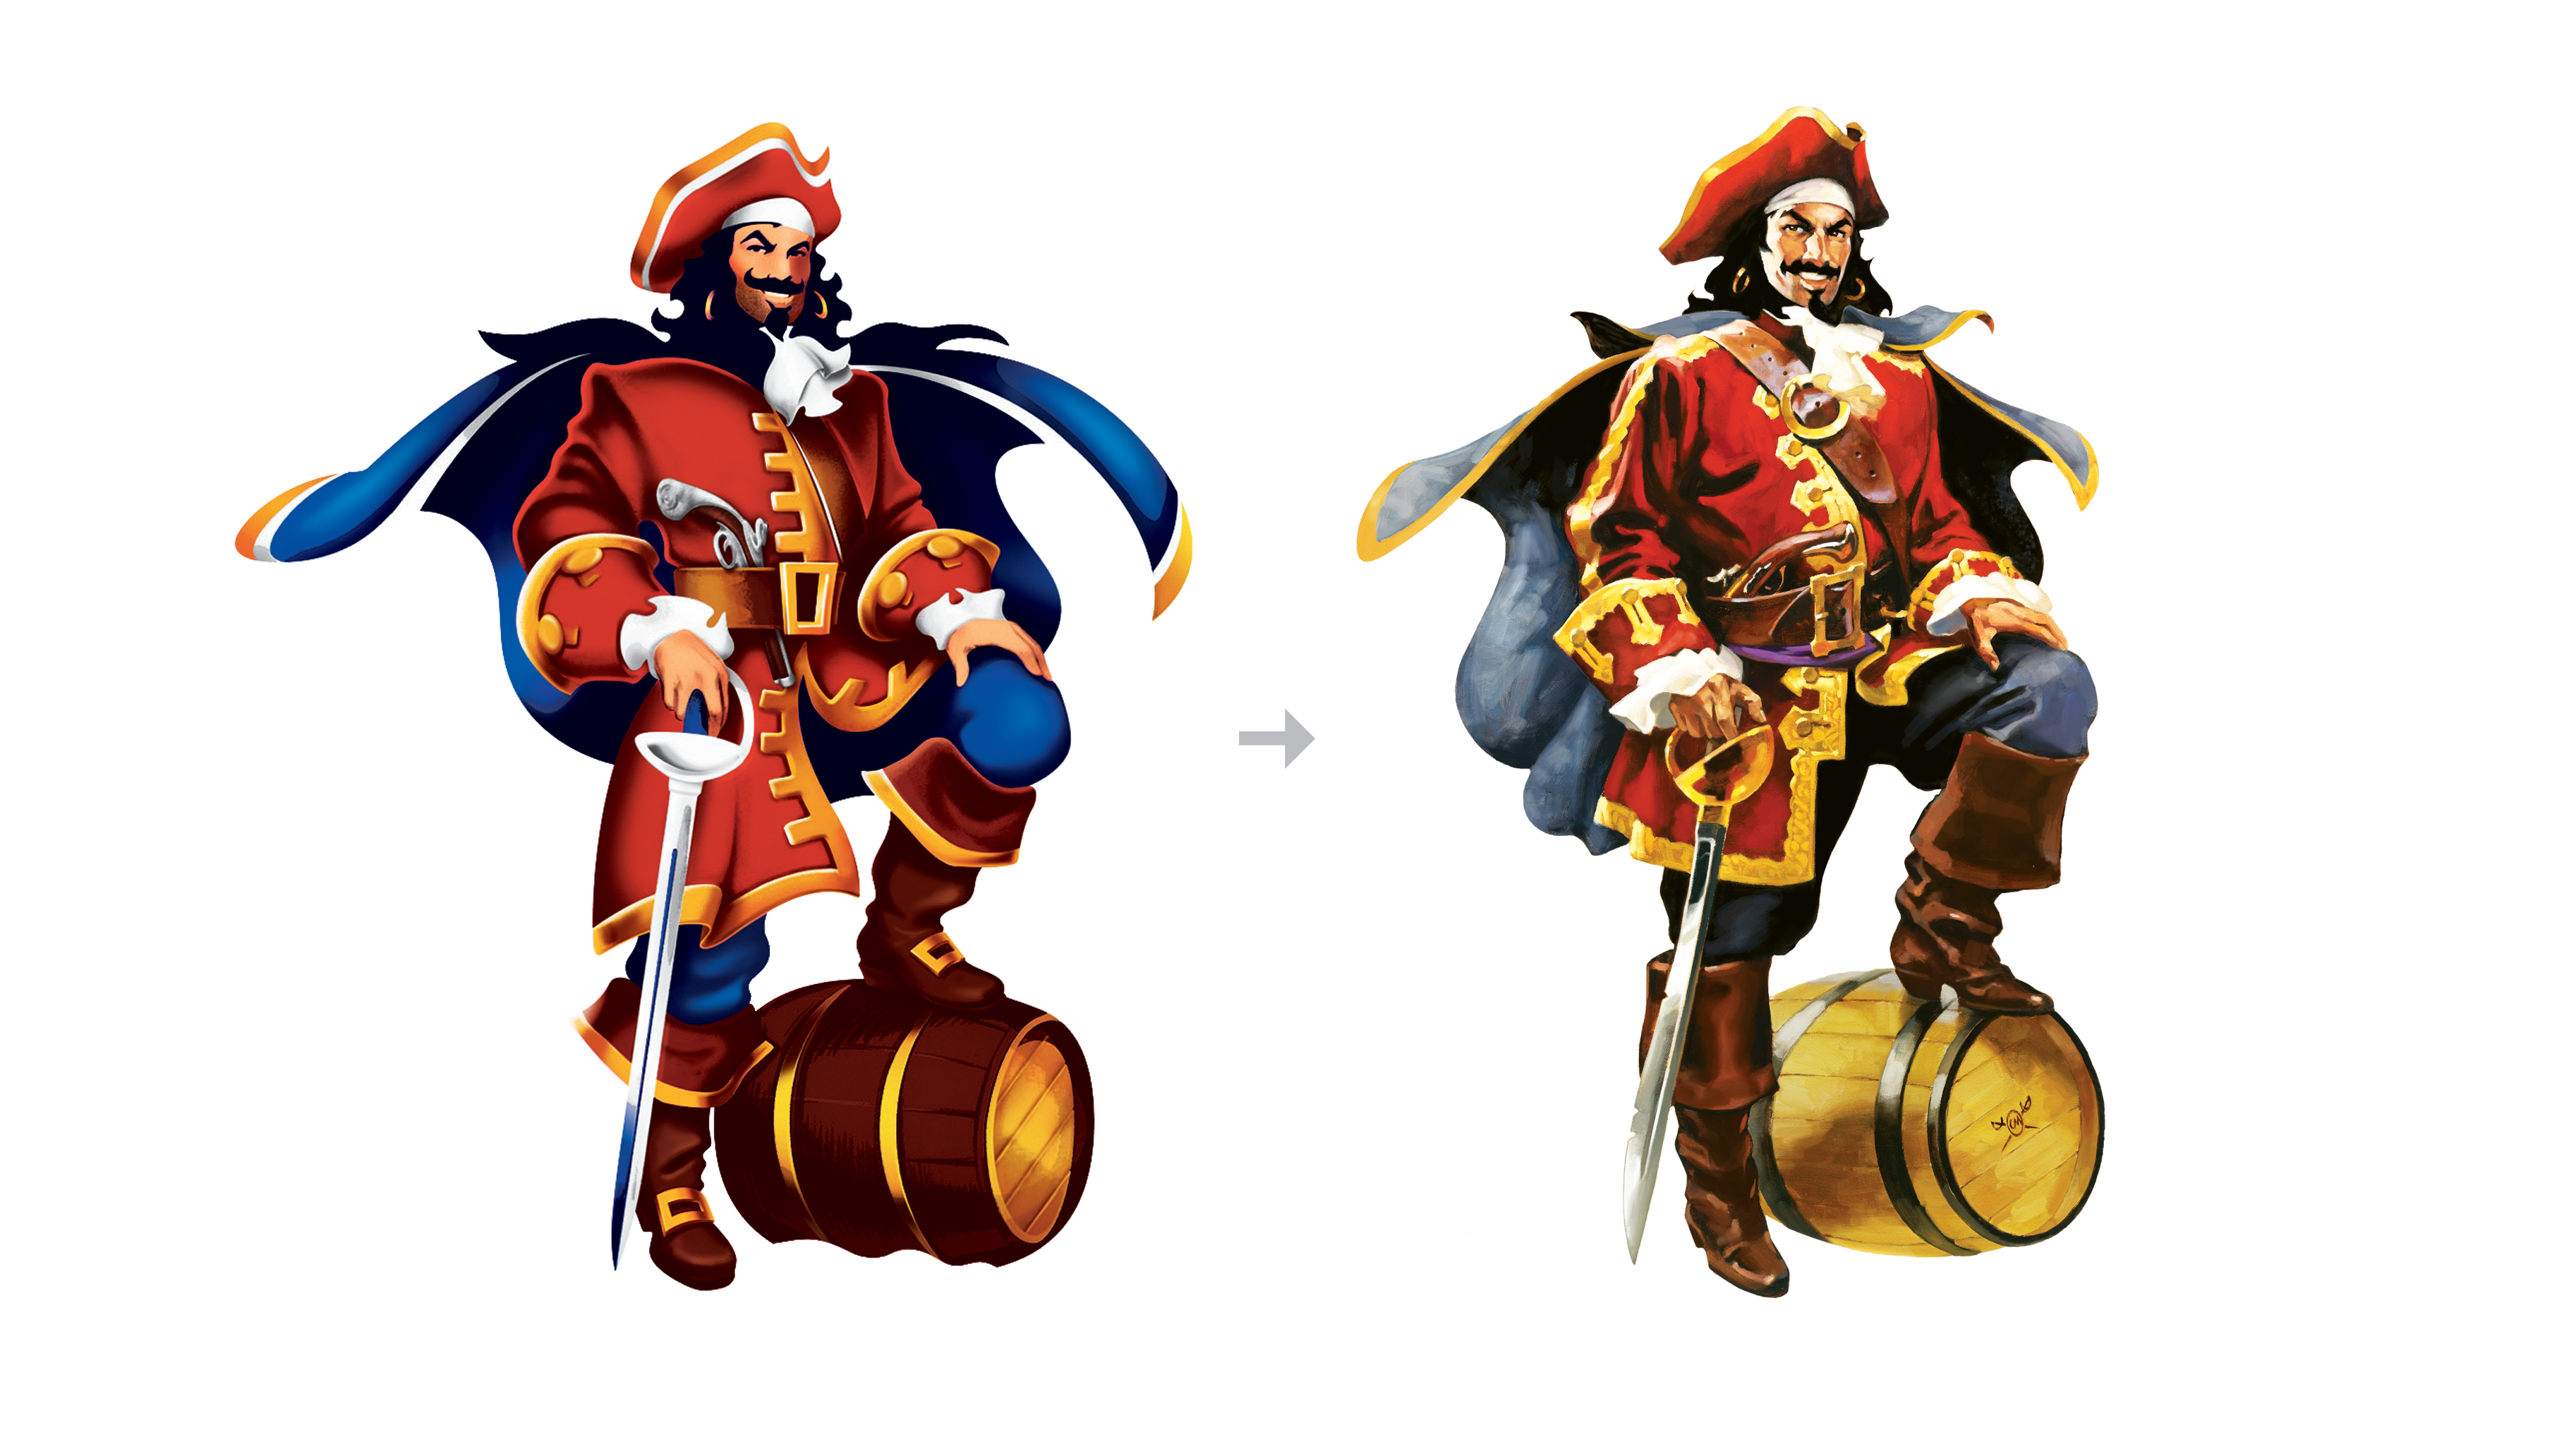 Captain Morgan Rum redesign,  before and after. new illustration by Greg Manchess